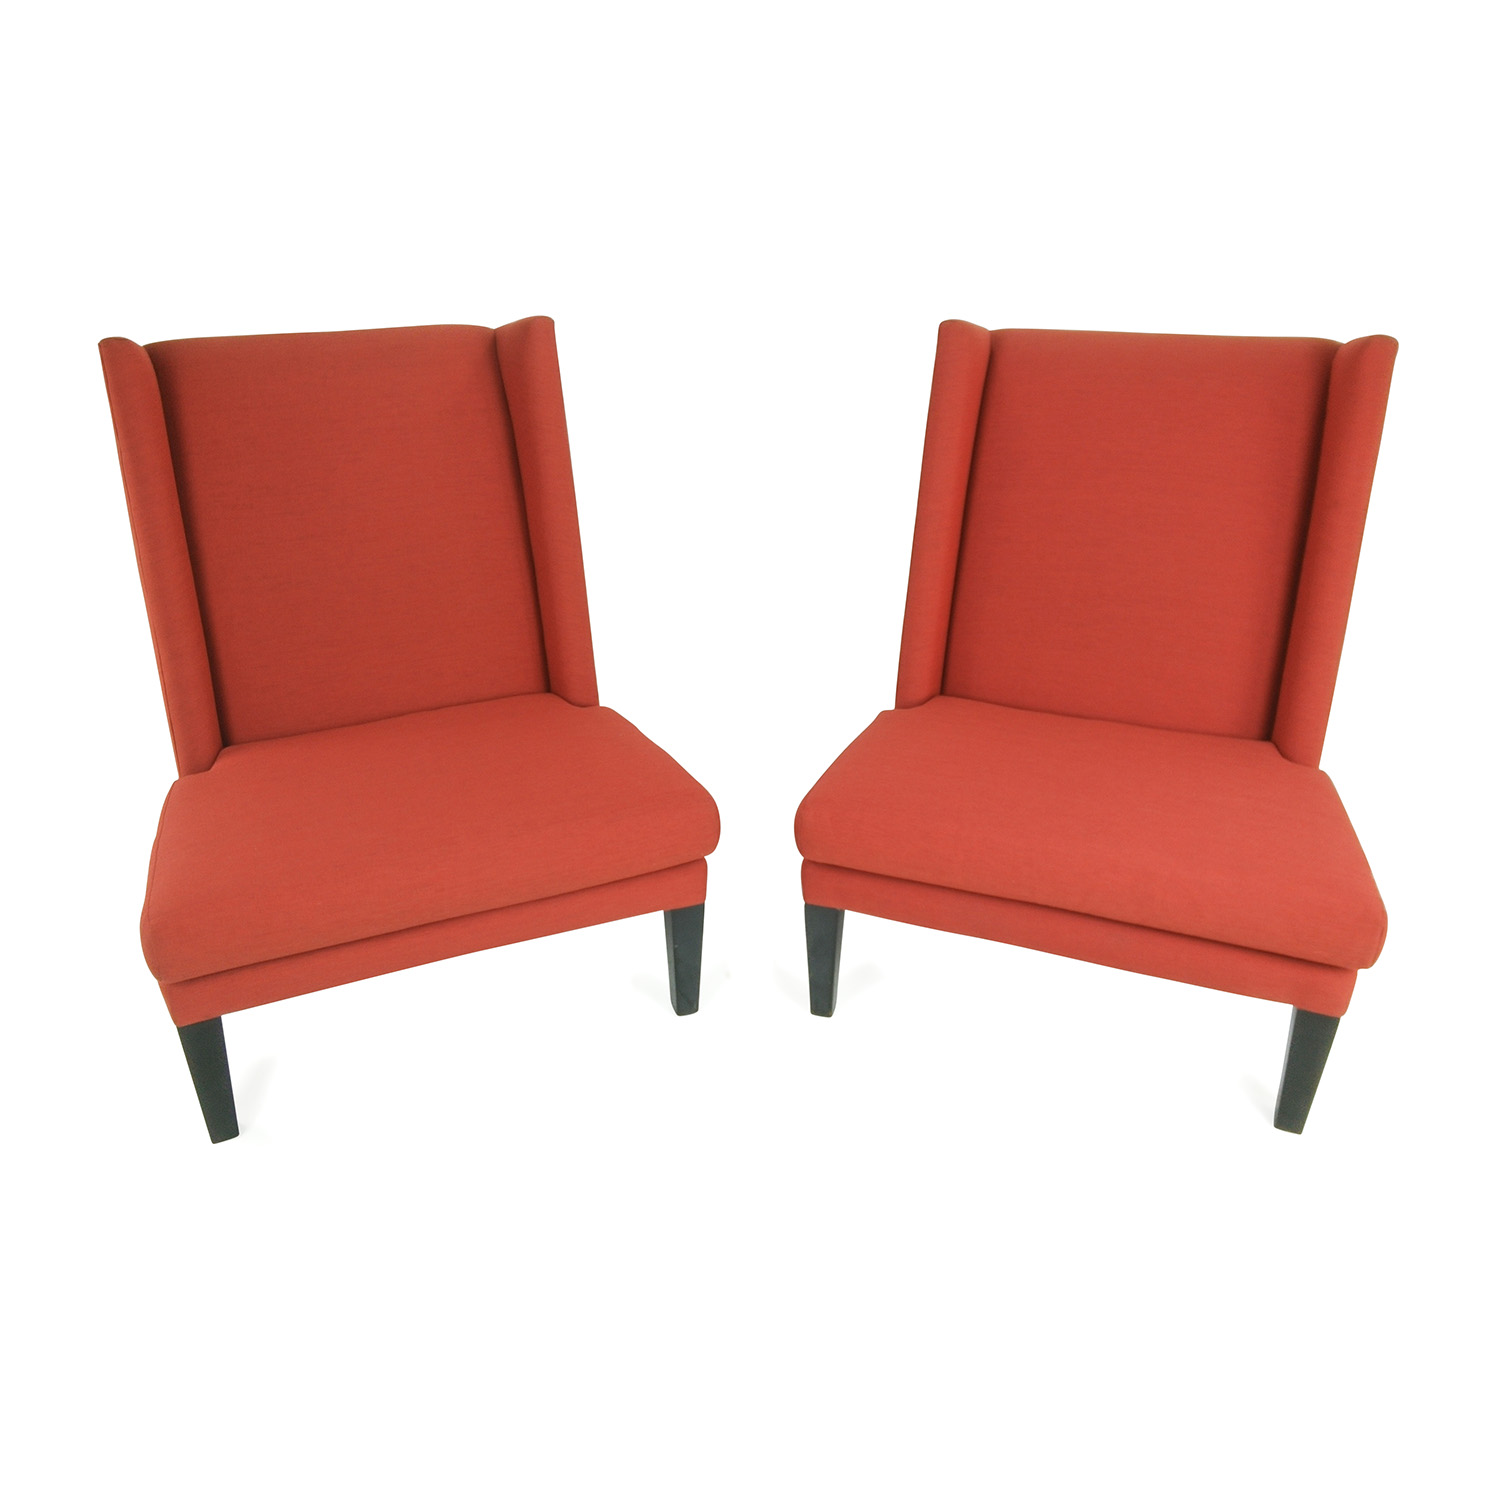 CB2 CB2 Red Chairs used